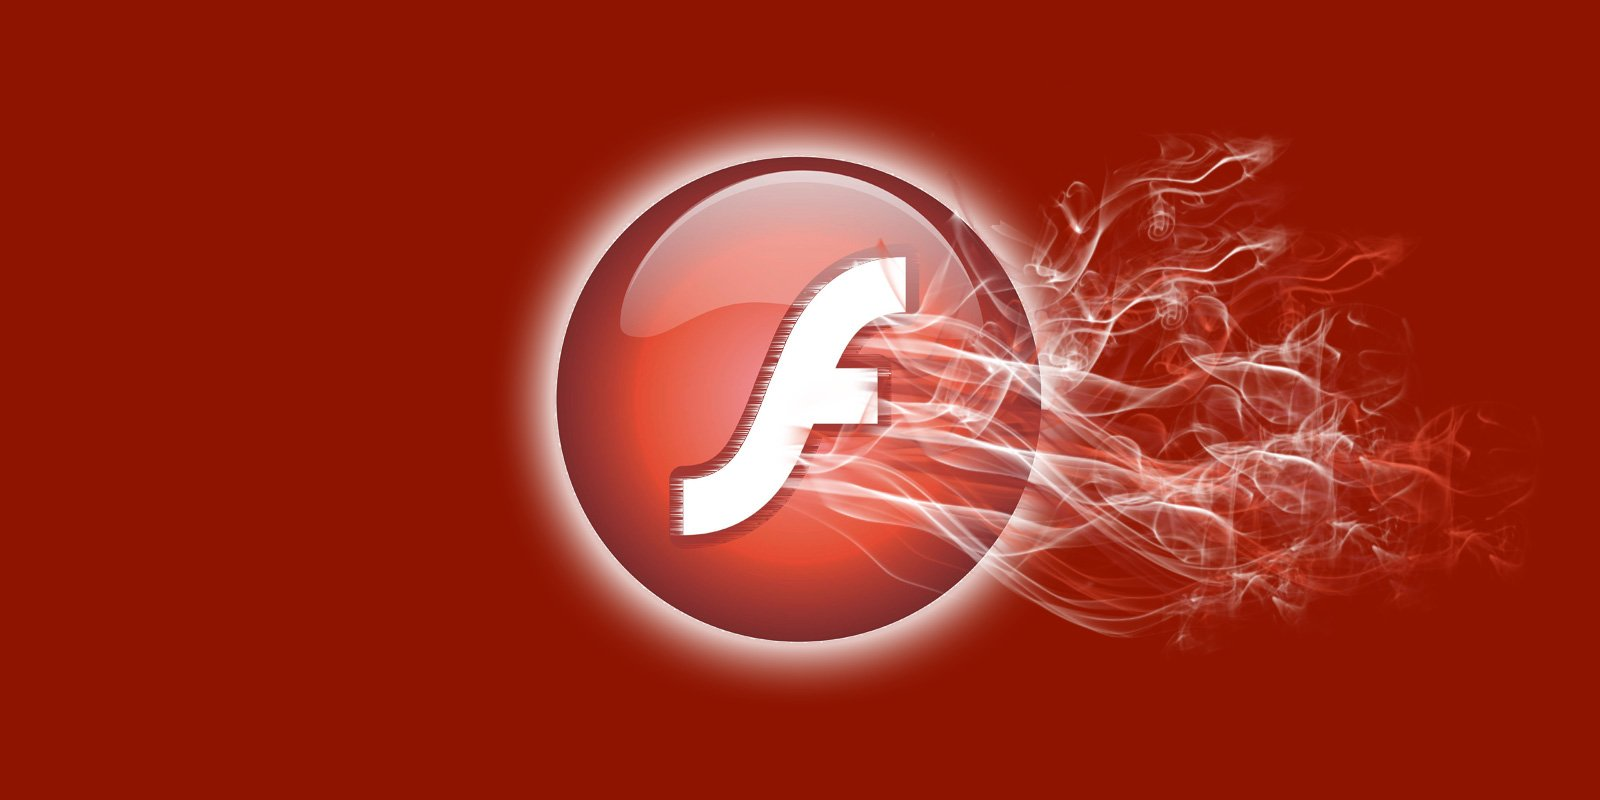 Adobe Flash Player end of life